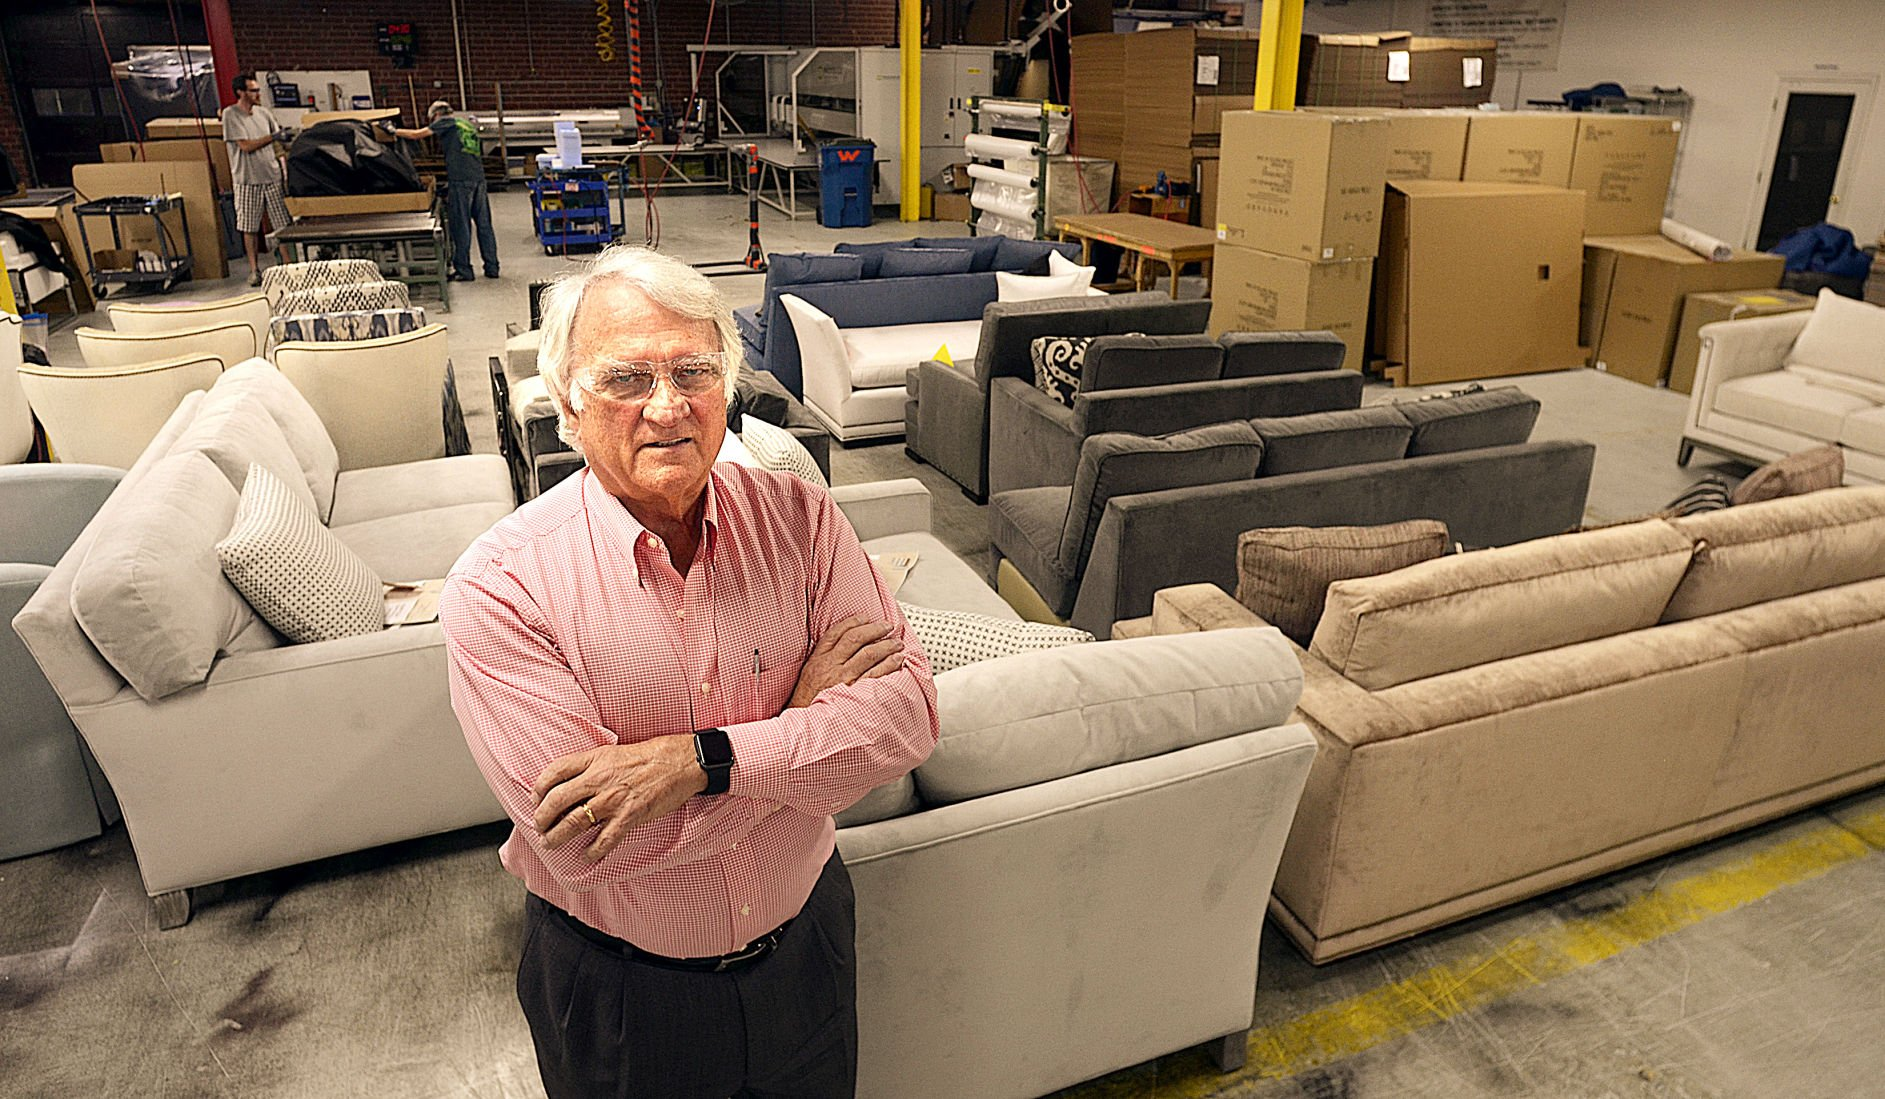 Amazing Furniture Executive Promotes Continuous Improvement In Industry, Community  | News | Hickoryrecord.com